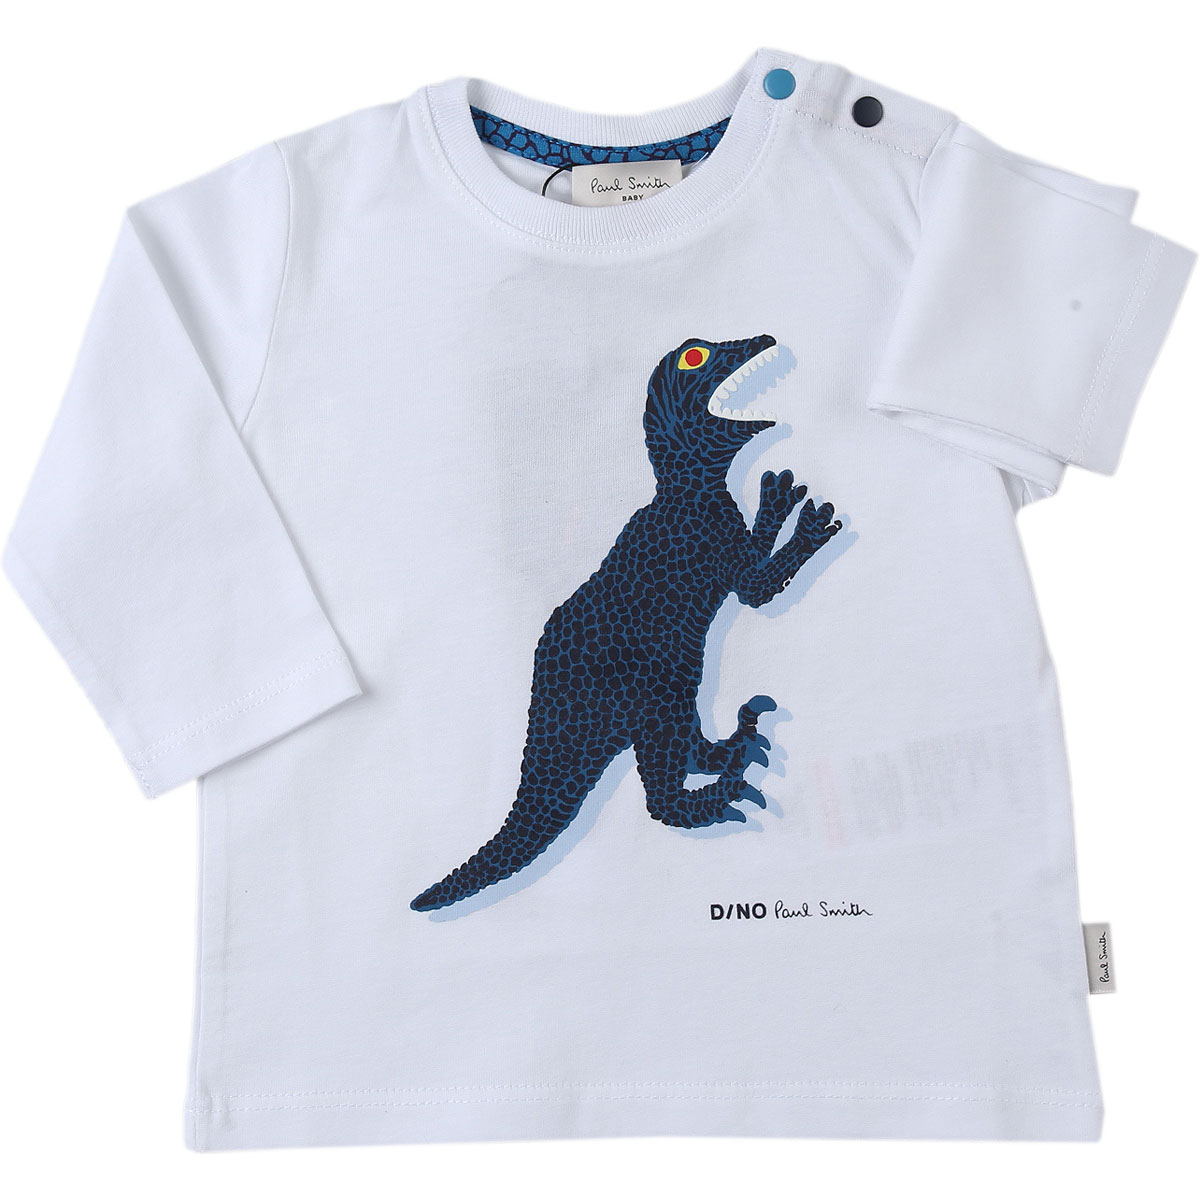 Paul Smith Baby T-Shirt for Boys On Sale, White, Cotton, 2019, 12 M 18M 2Y 3Y 6M 9M